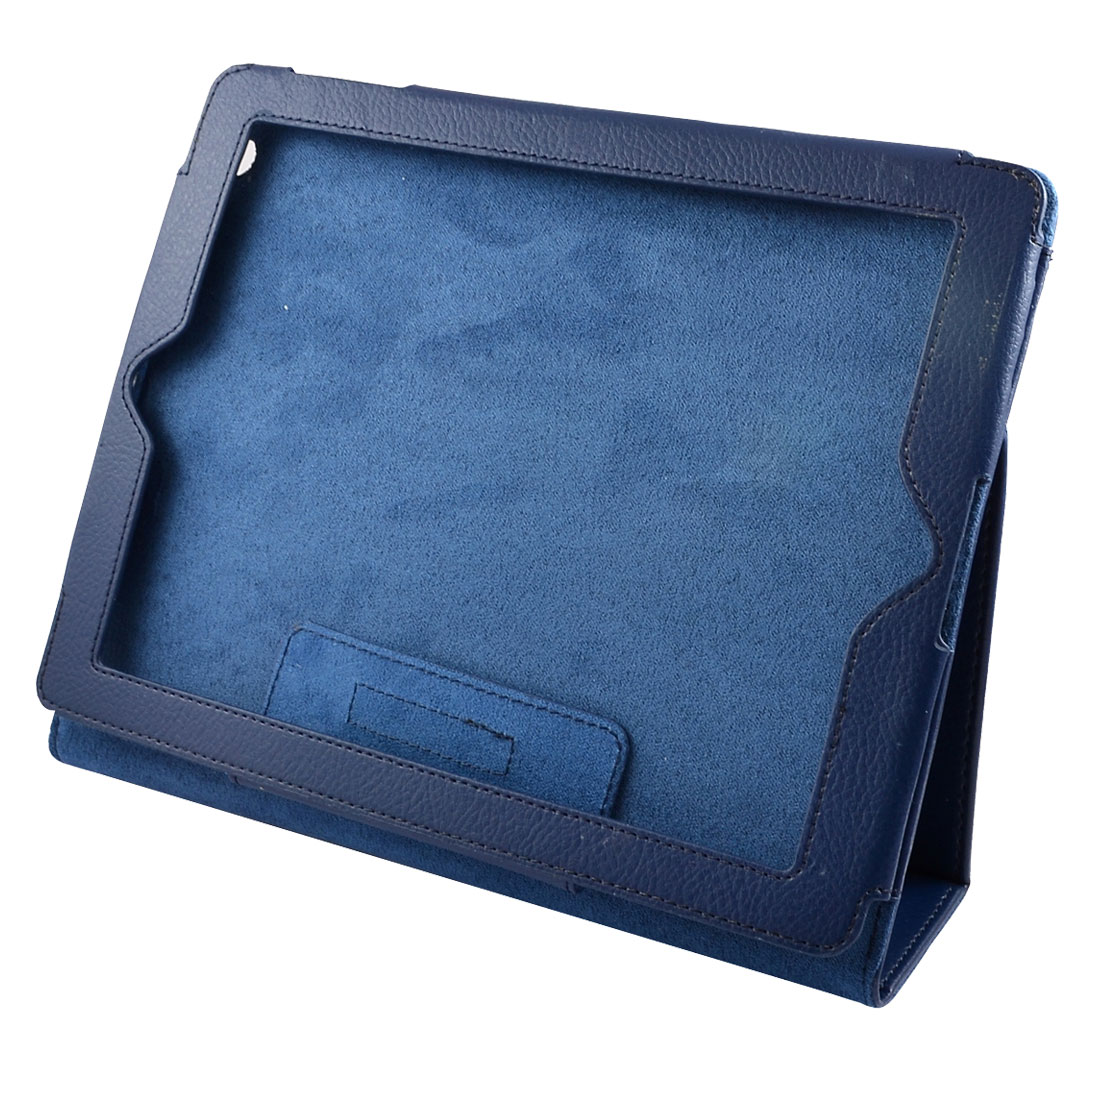 Faux Leather Bulit-in Magnet Case Protector Navy Blue for iPad 2 3rd